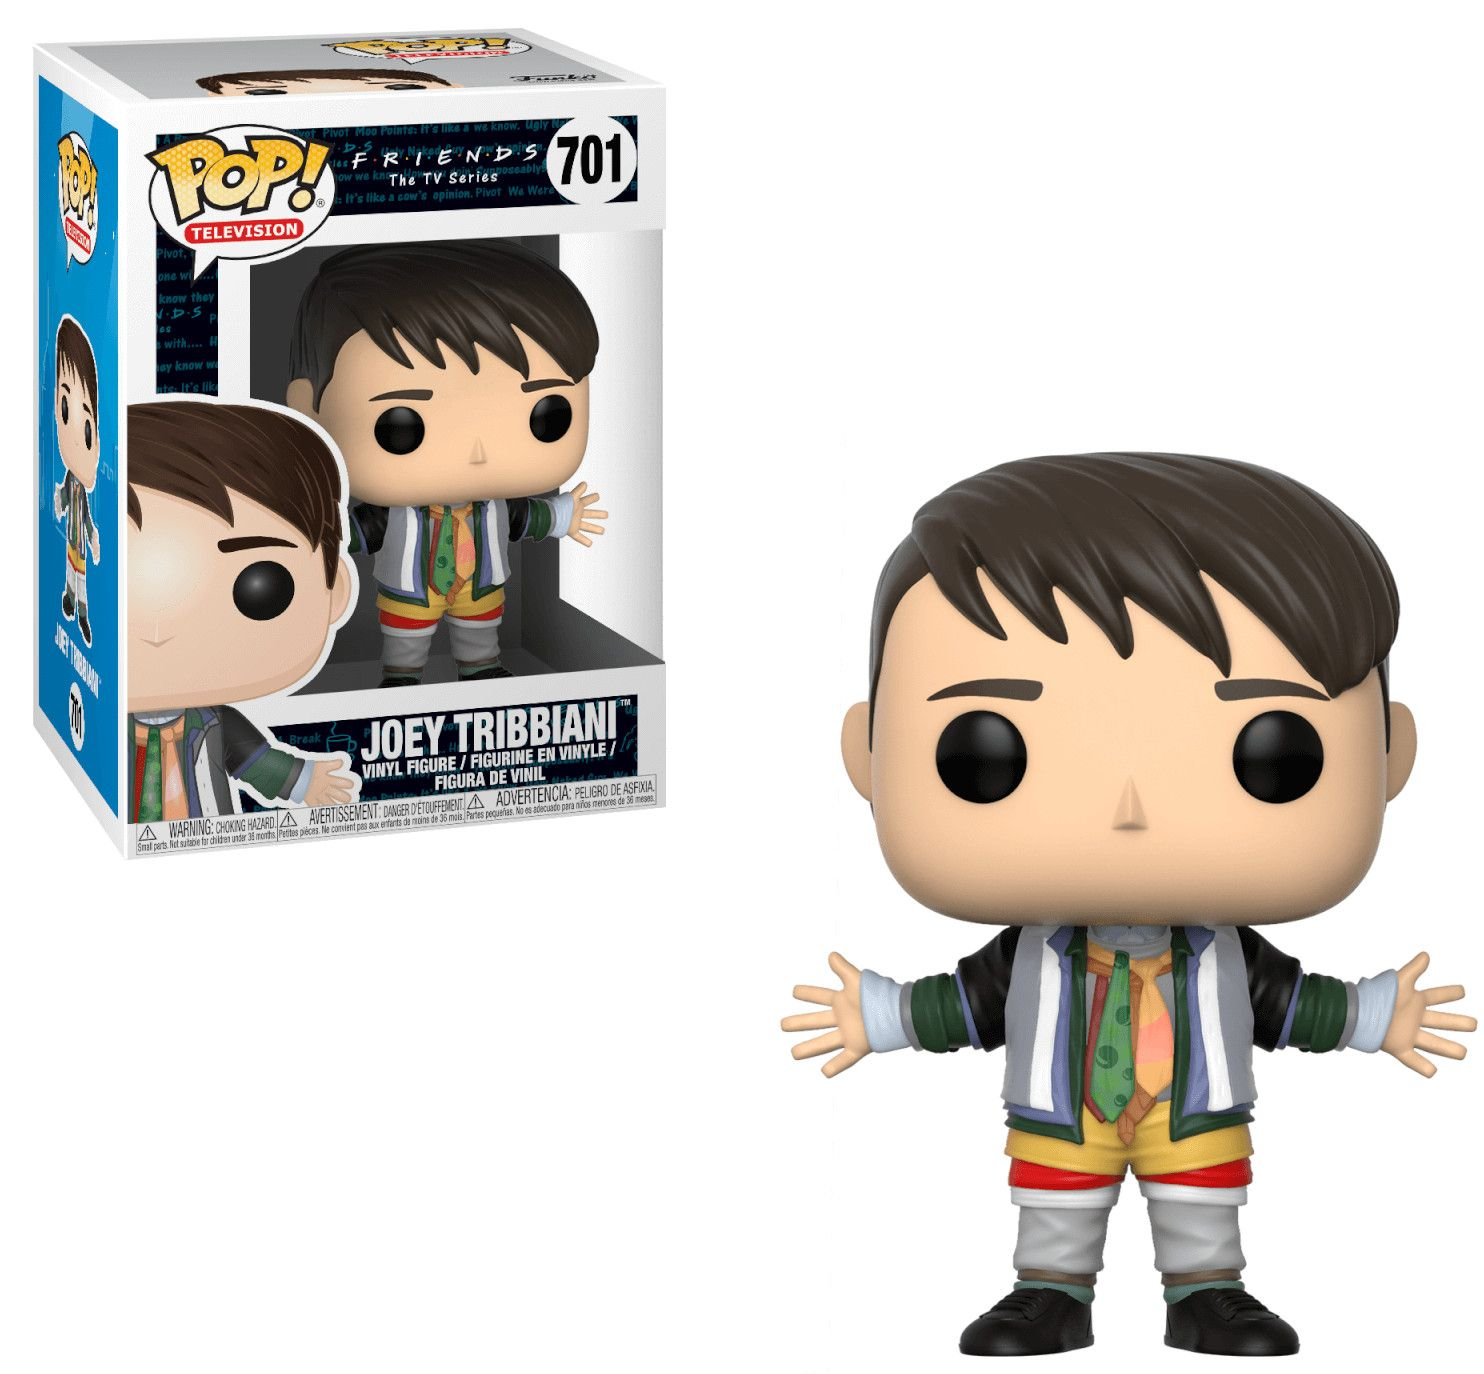 Фигура Funko Pop! Television: Friends - Joey Tribbiani in Chandler's Clothes, #701  - 2